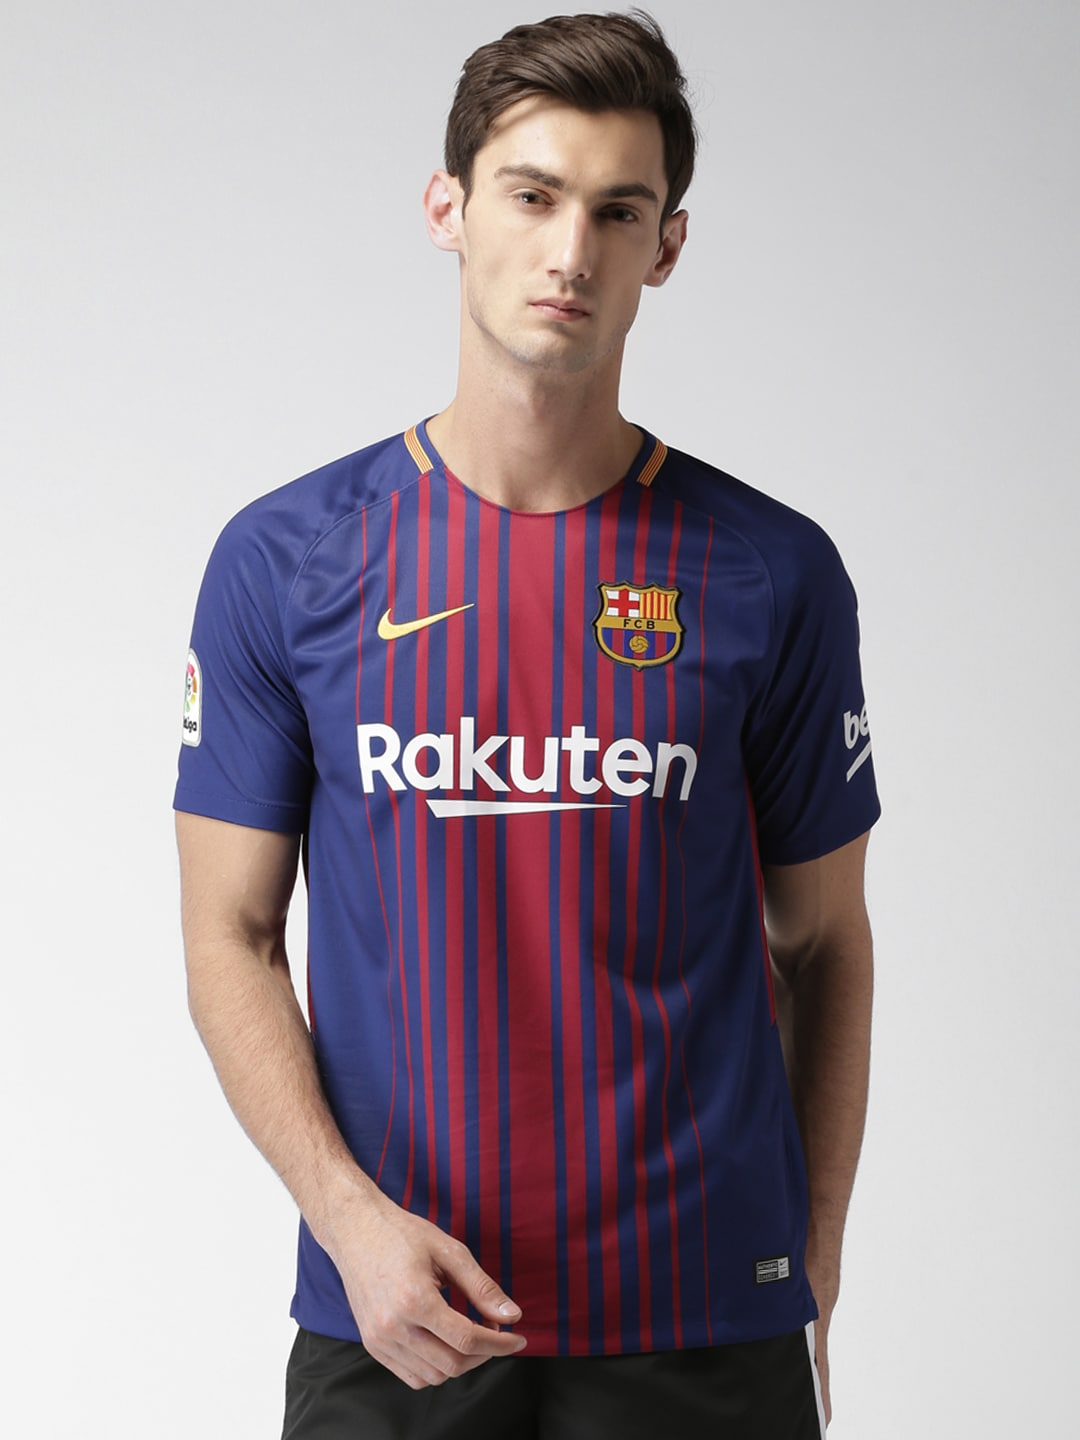 3fcebfcd15a1a Nike French Connection Fc Barcelona Jersey - Buy Nike French Connection Fc  Barcelona Jersey online in India